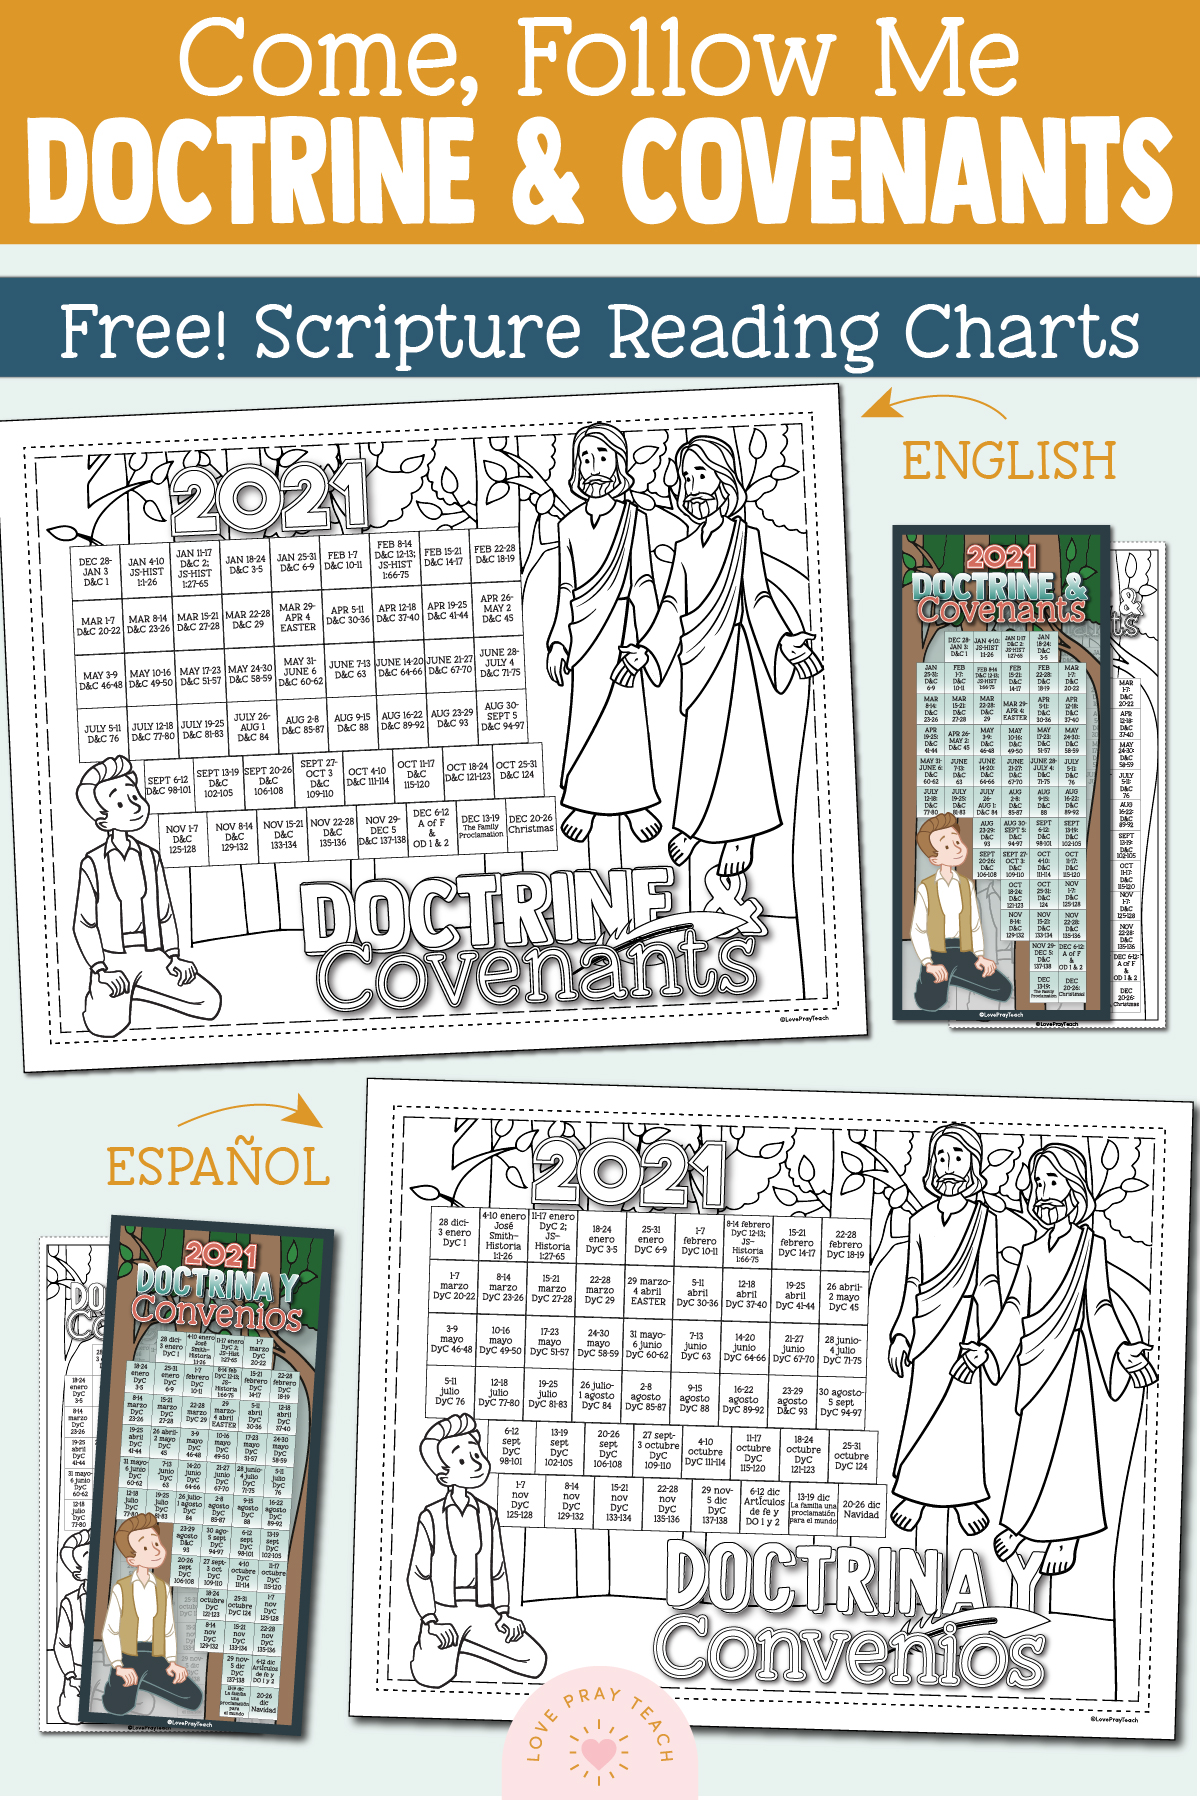 Free 2021 Doctrine and Covenants Scripture Reading Charts in English and Spanish www.LovePrayTeach.com